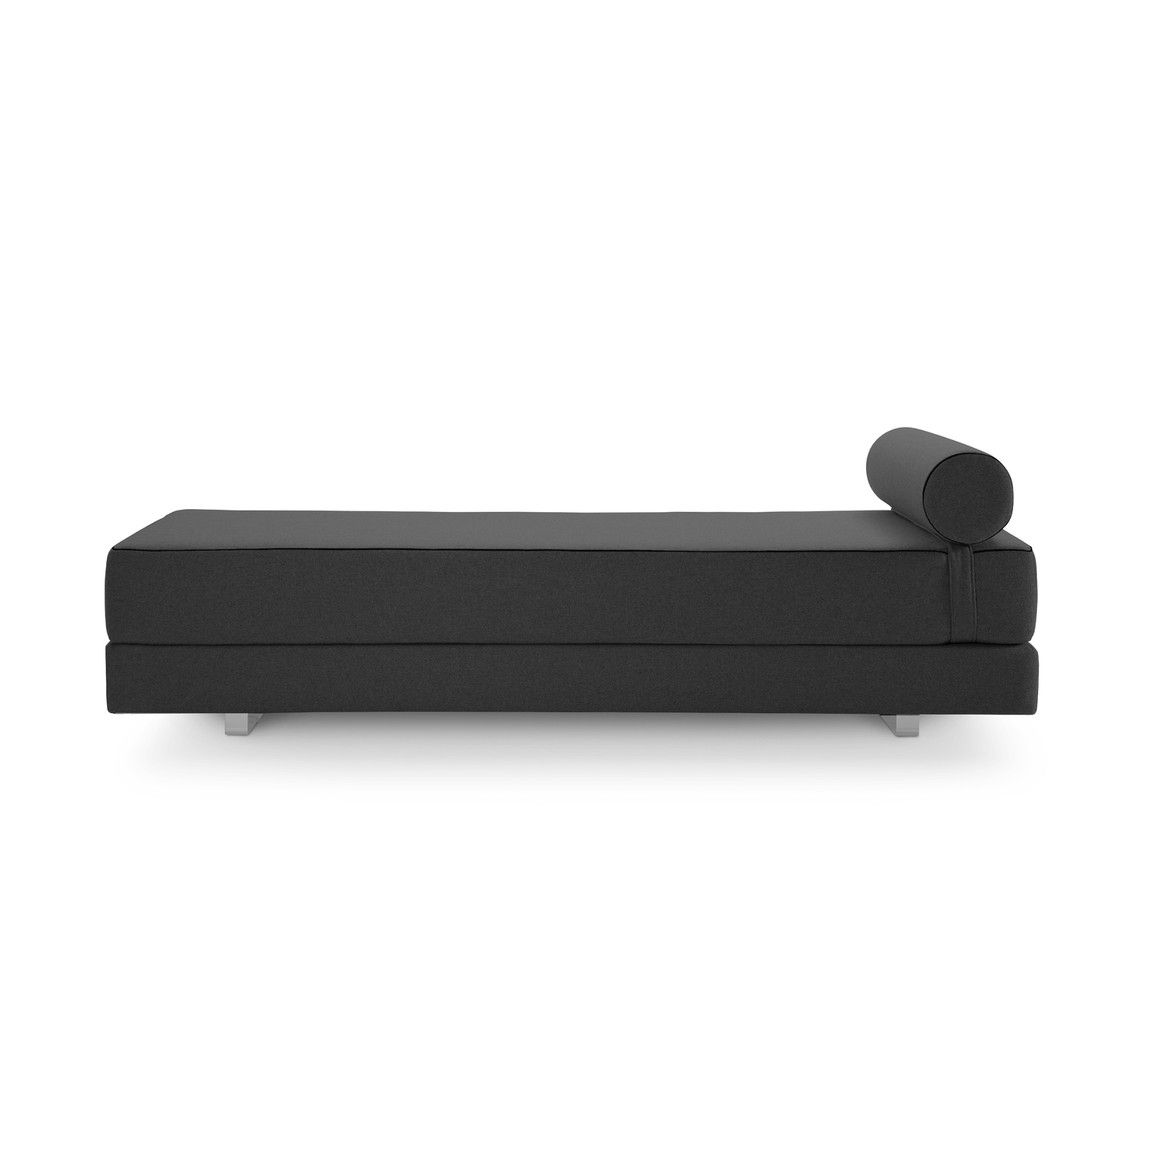 Bettsofa Lubi Bettsofas Bei Interio Bettsofa Sofa Bett